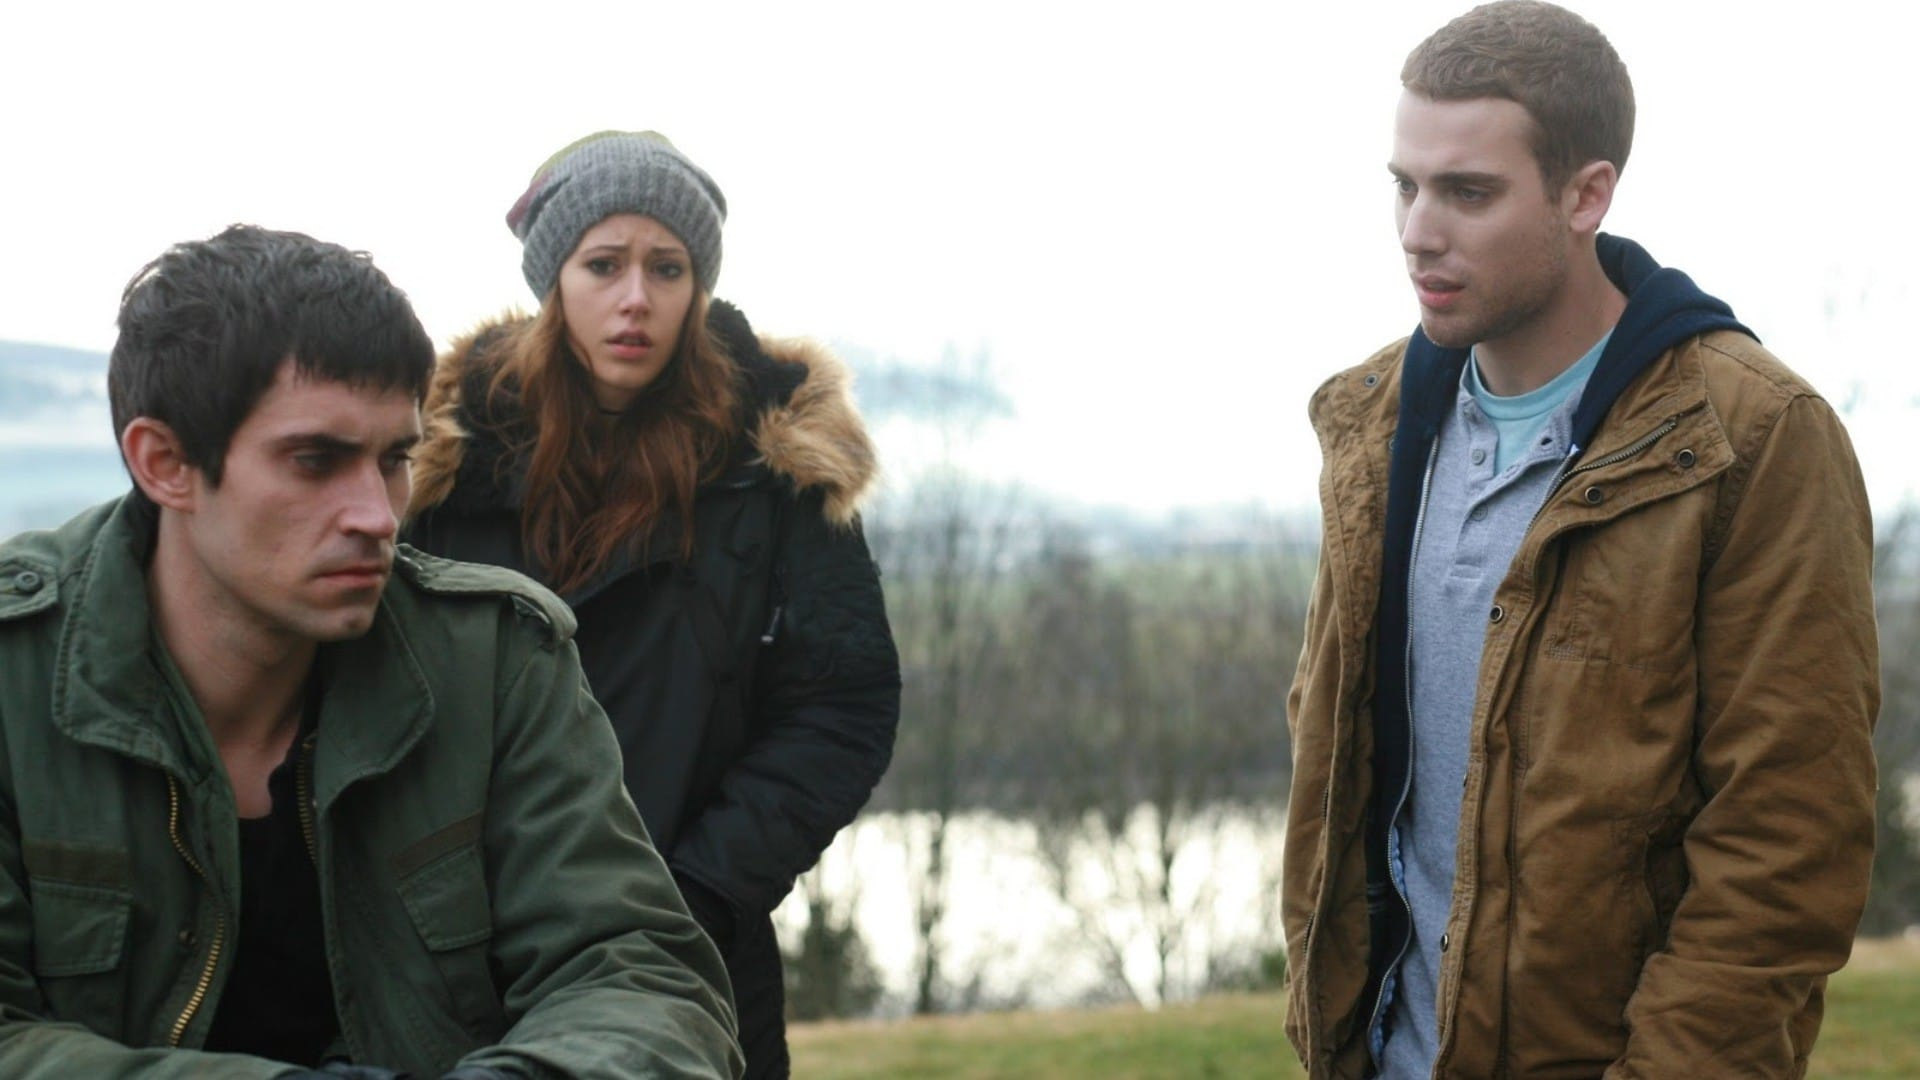 Three people caught in a timeloop - (l to r) Richard de Klerk, Amanda Crew and Dustin Milligan in Repeaters (2010)